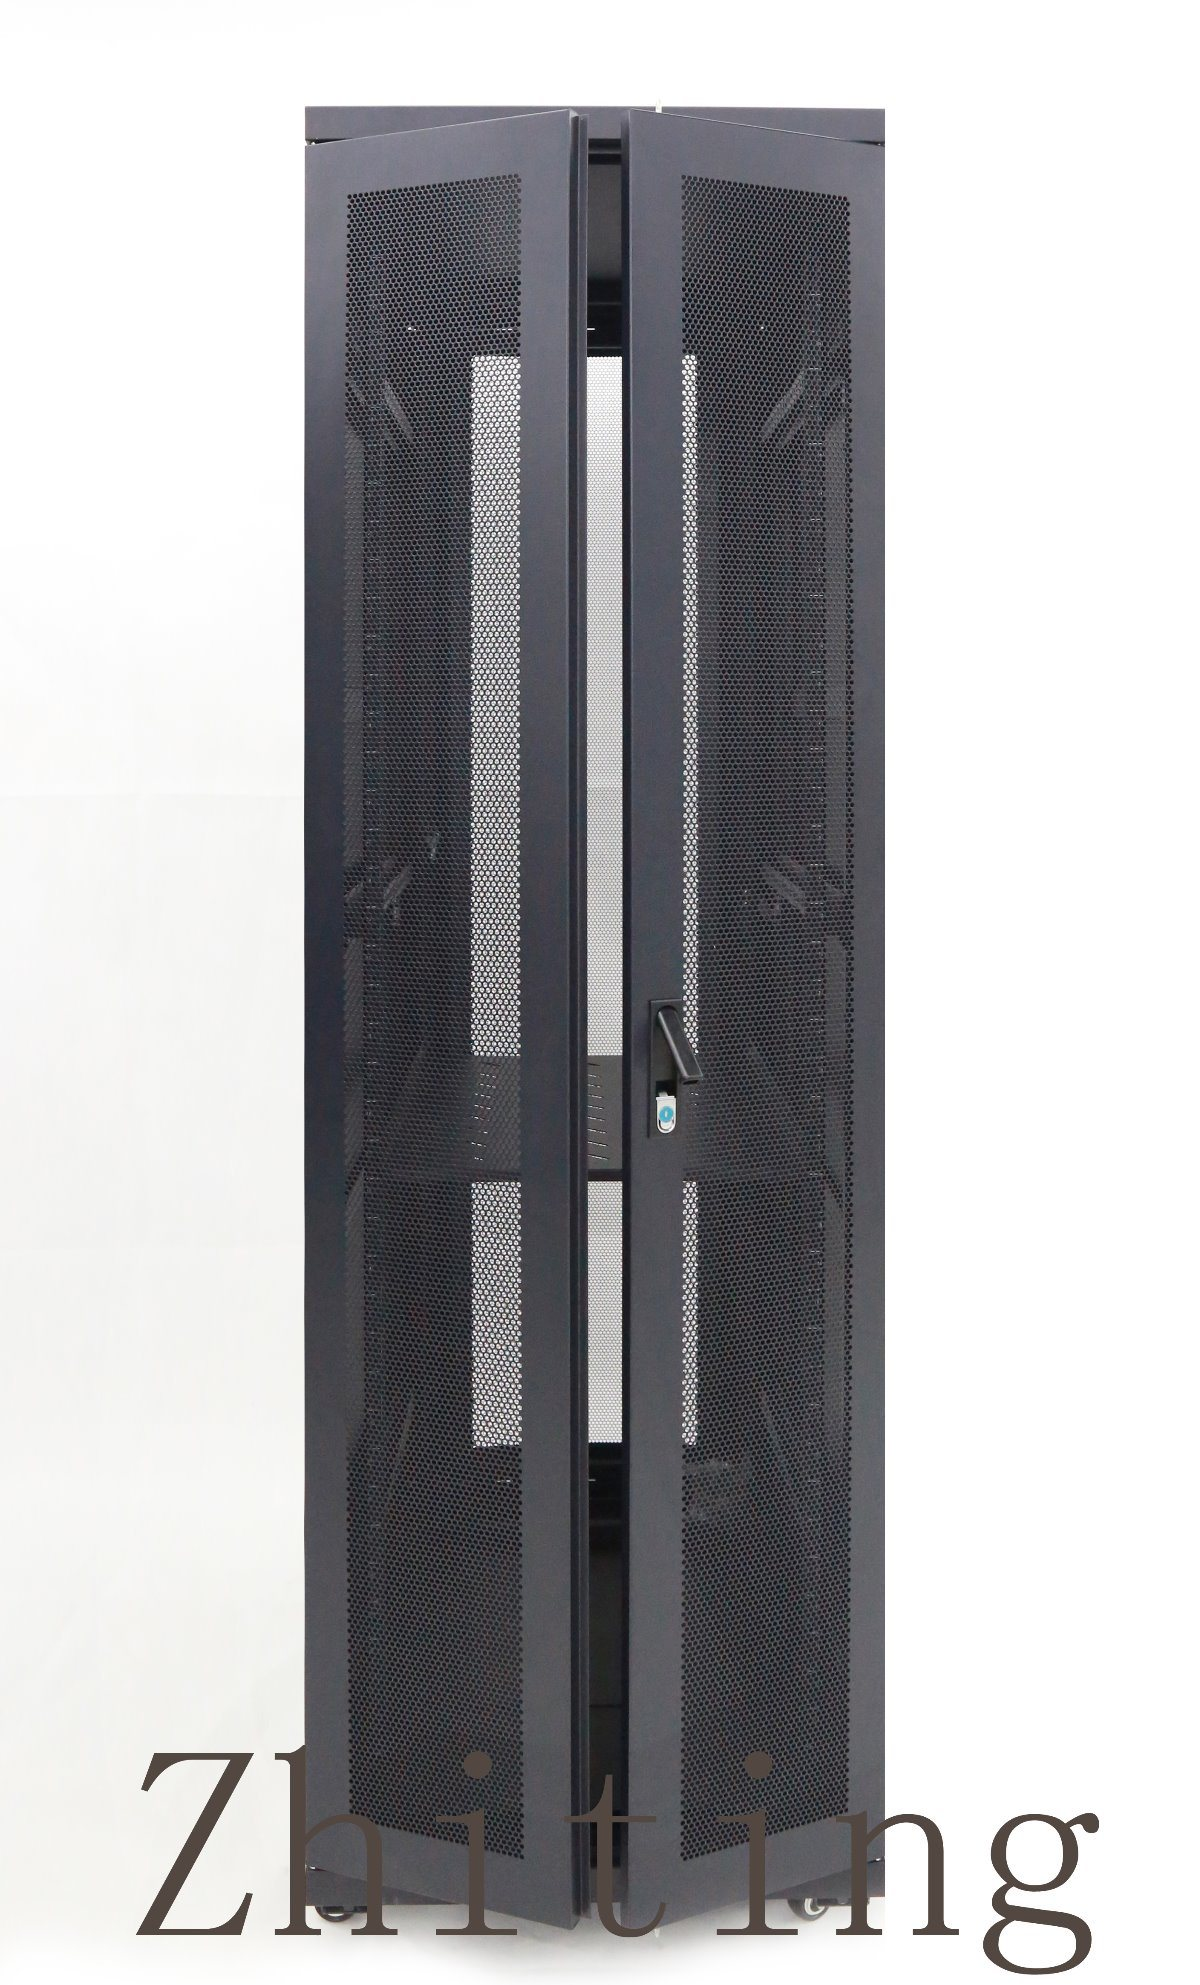 19 Inch Zt Ls Series Network Server Rack with Tailored Height